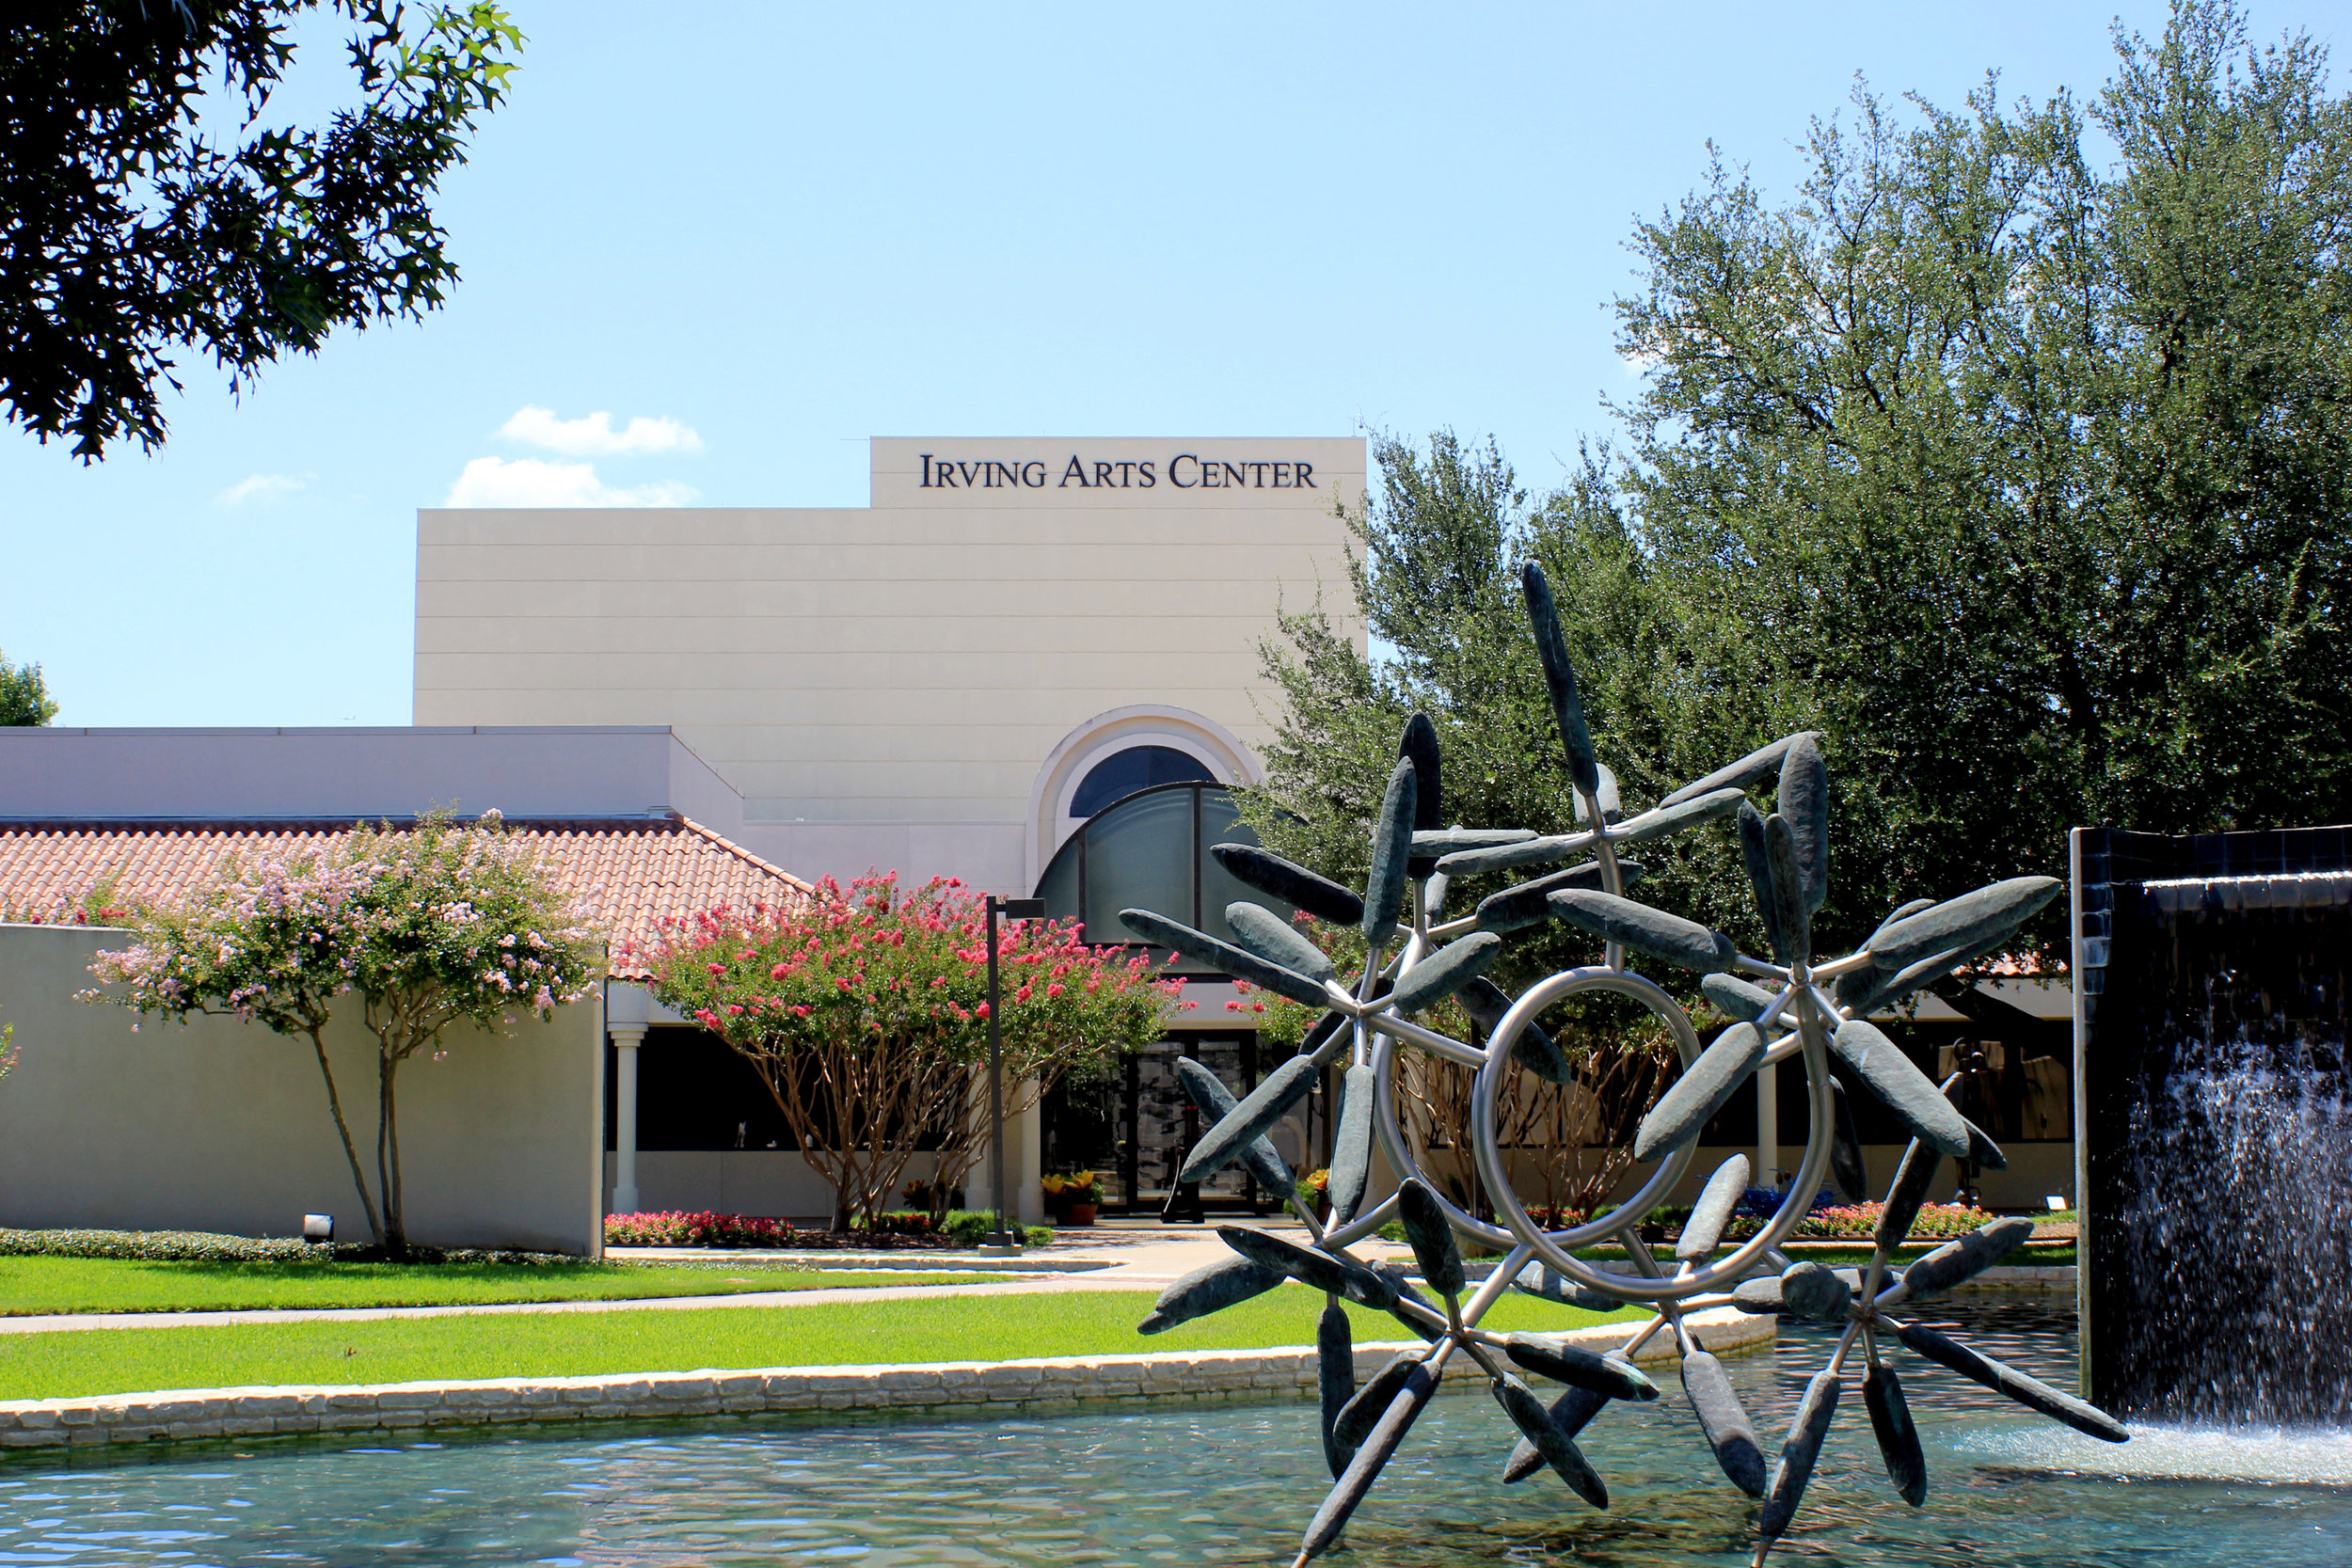 IrvingArtsCenter-outside.jpg